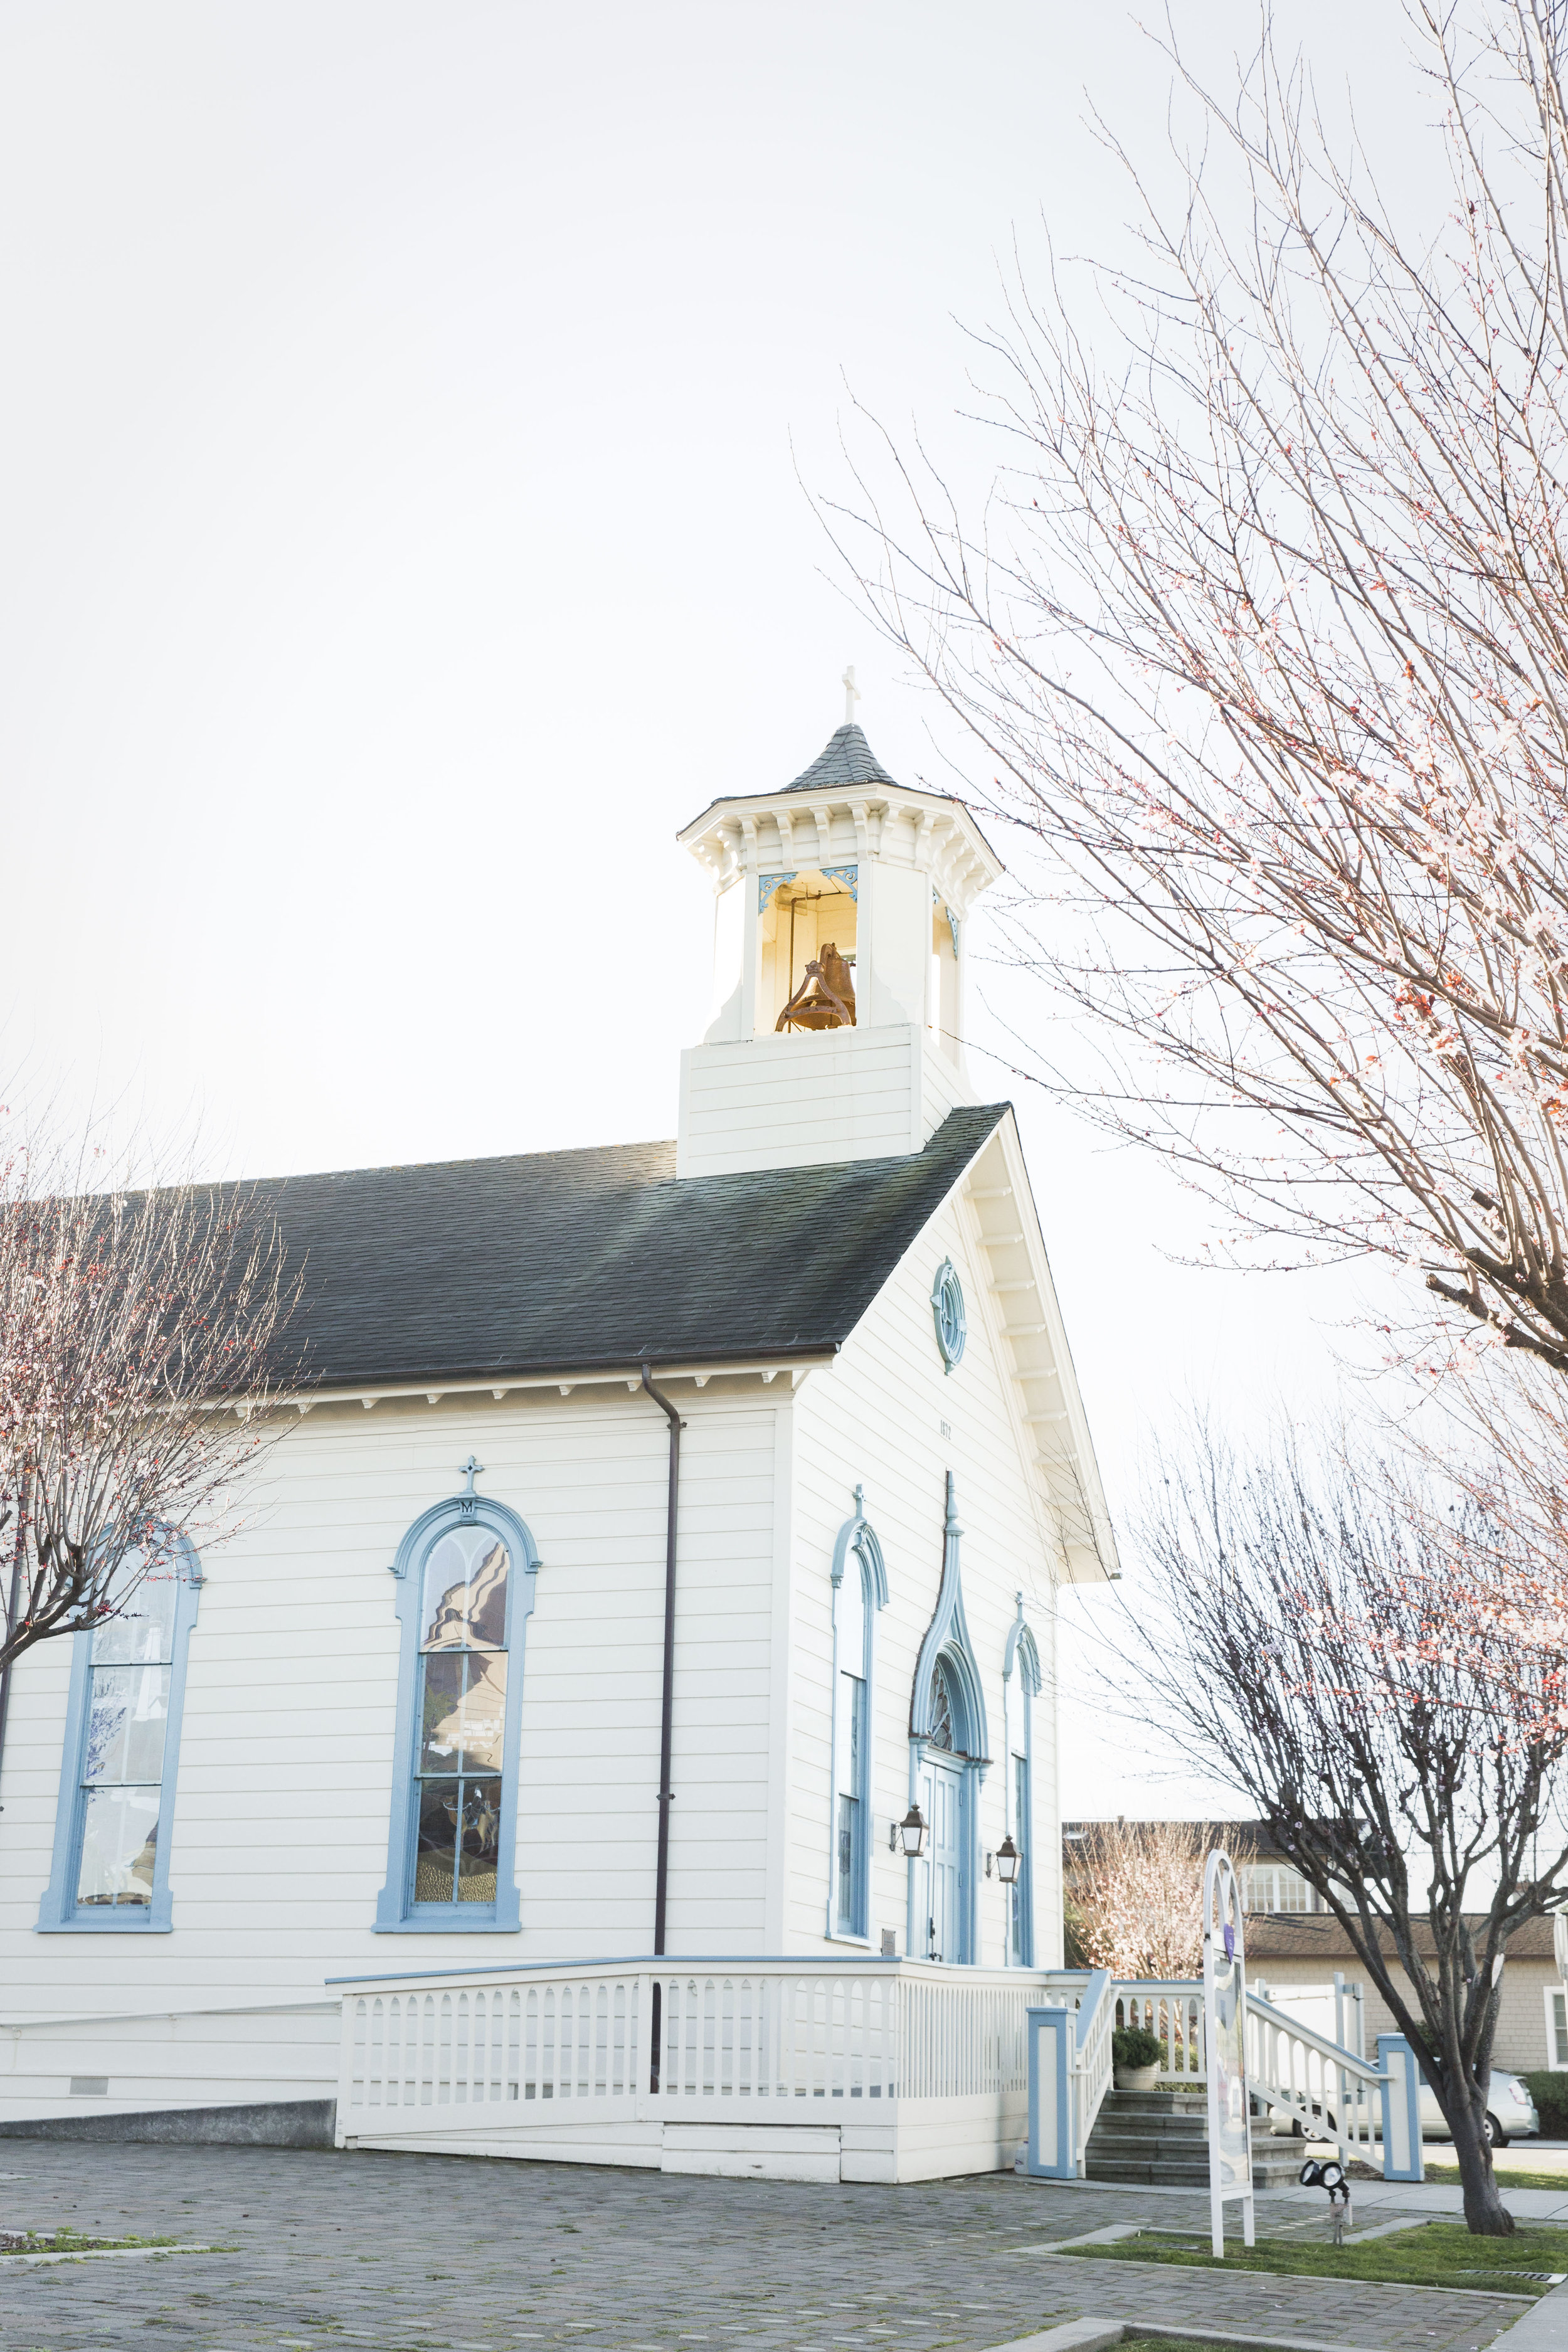 The Historic Chapel - The Historic Chapel is the longest continually used Chapel in San Mateo County, and its stain glass windows provide a peaceful and loving atmosphere. The Chapel can accommodate groups up to 100.